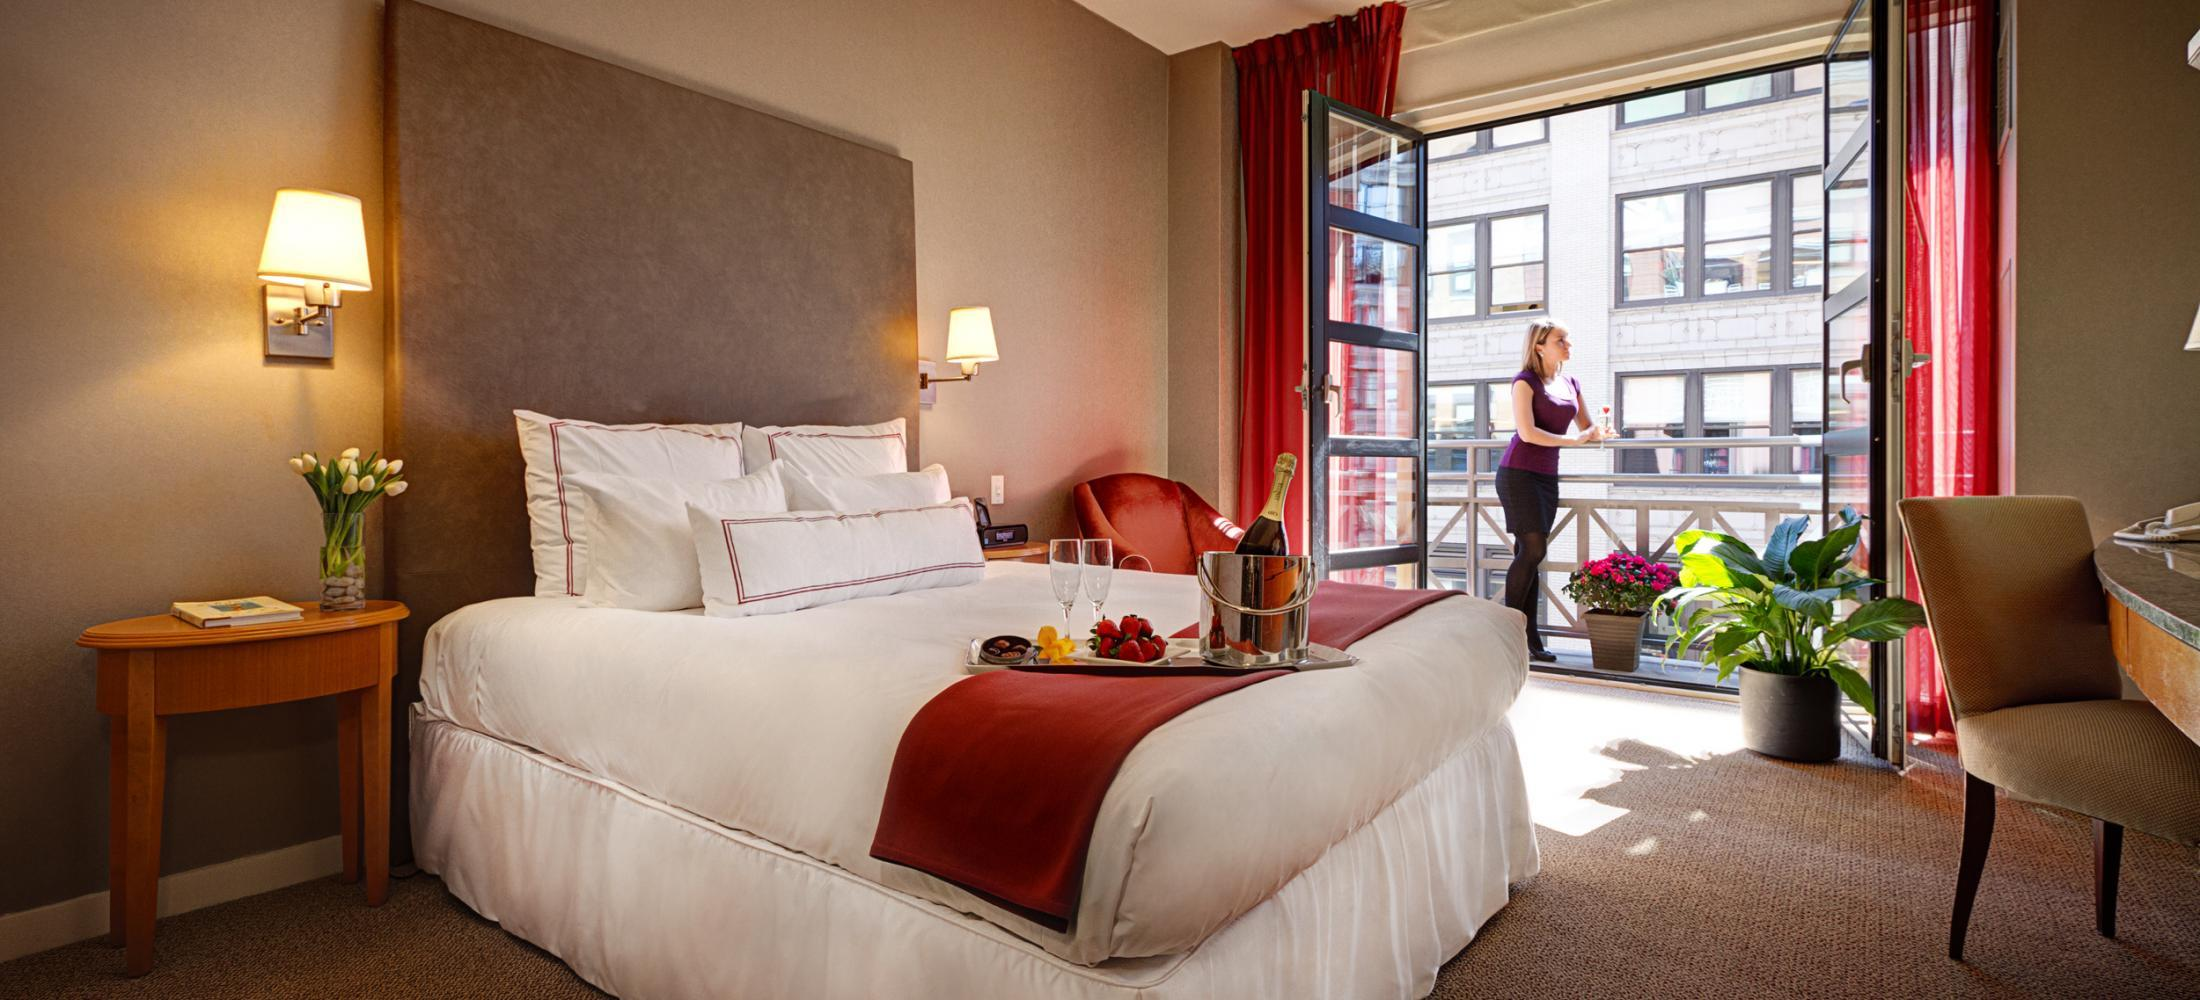 Our Guestroom with 1 Queen Bed is perfect for young couples who are ready to explore the city.